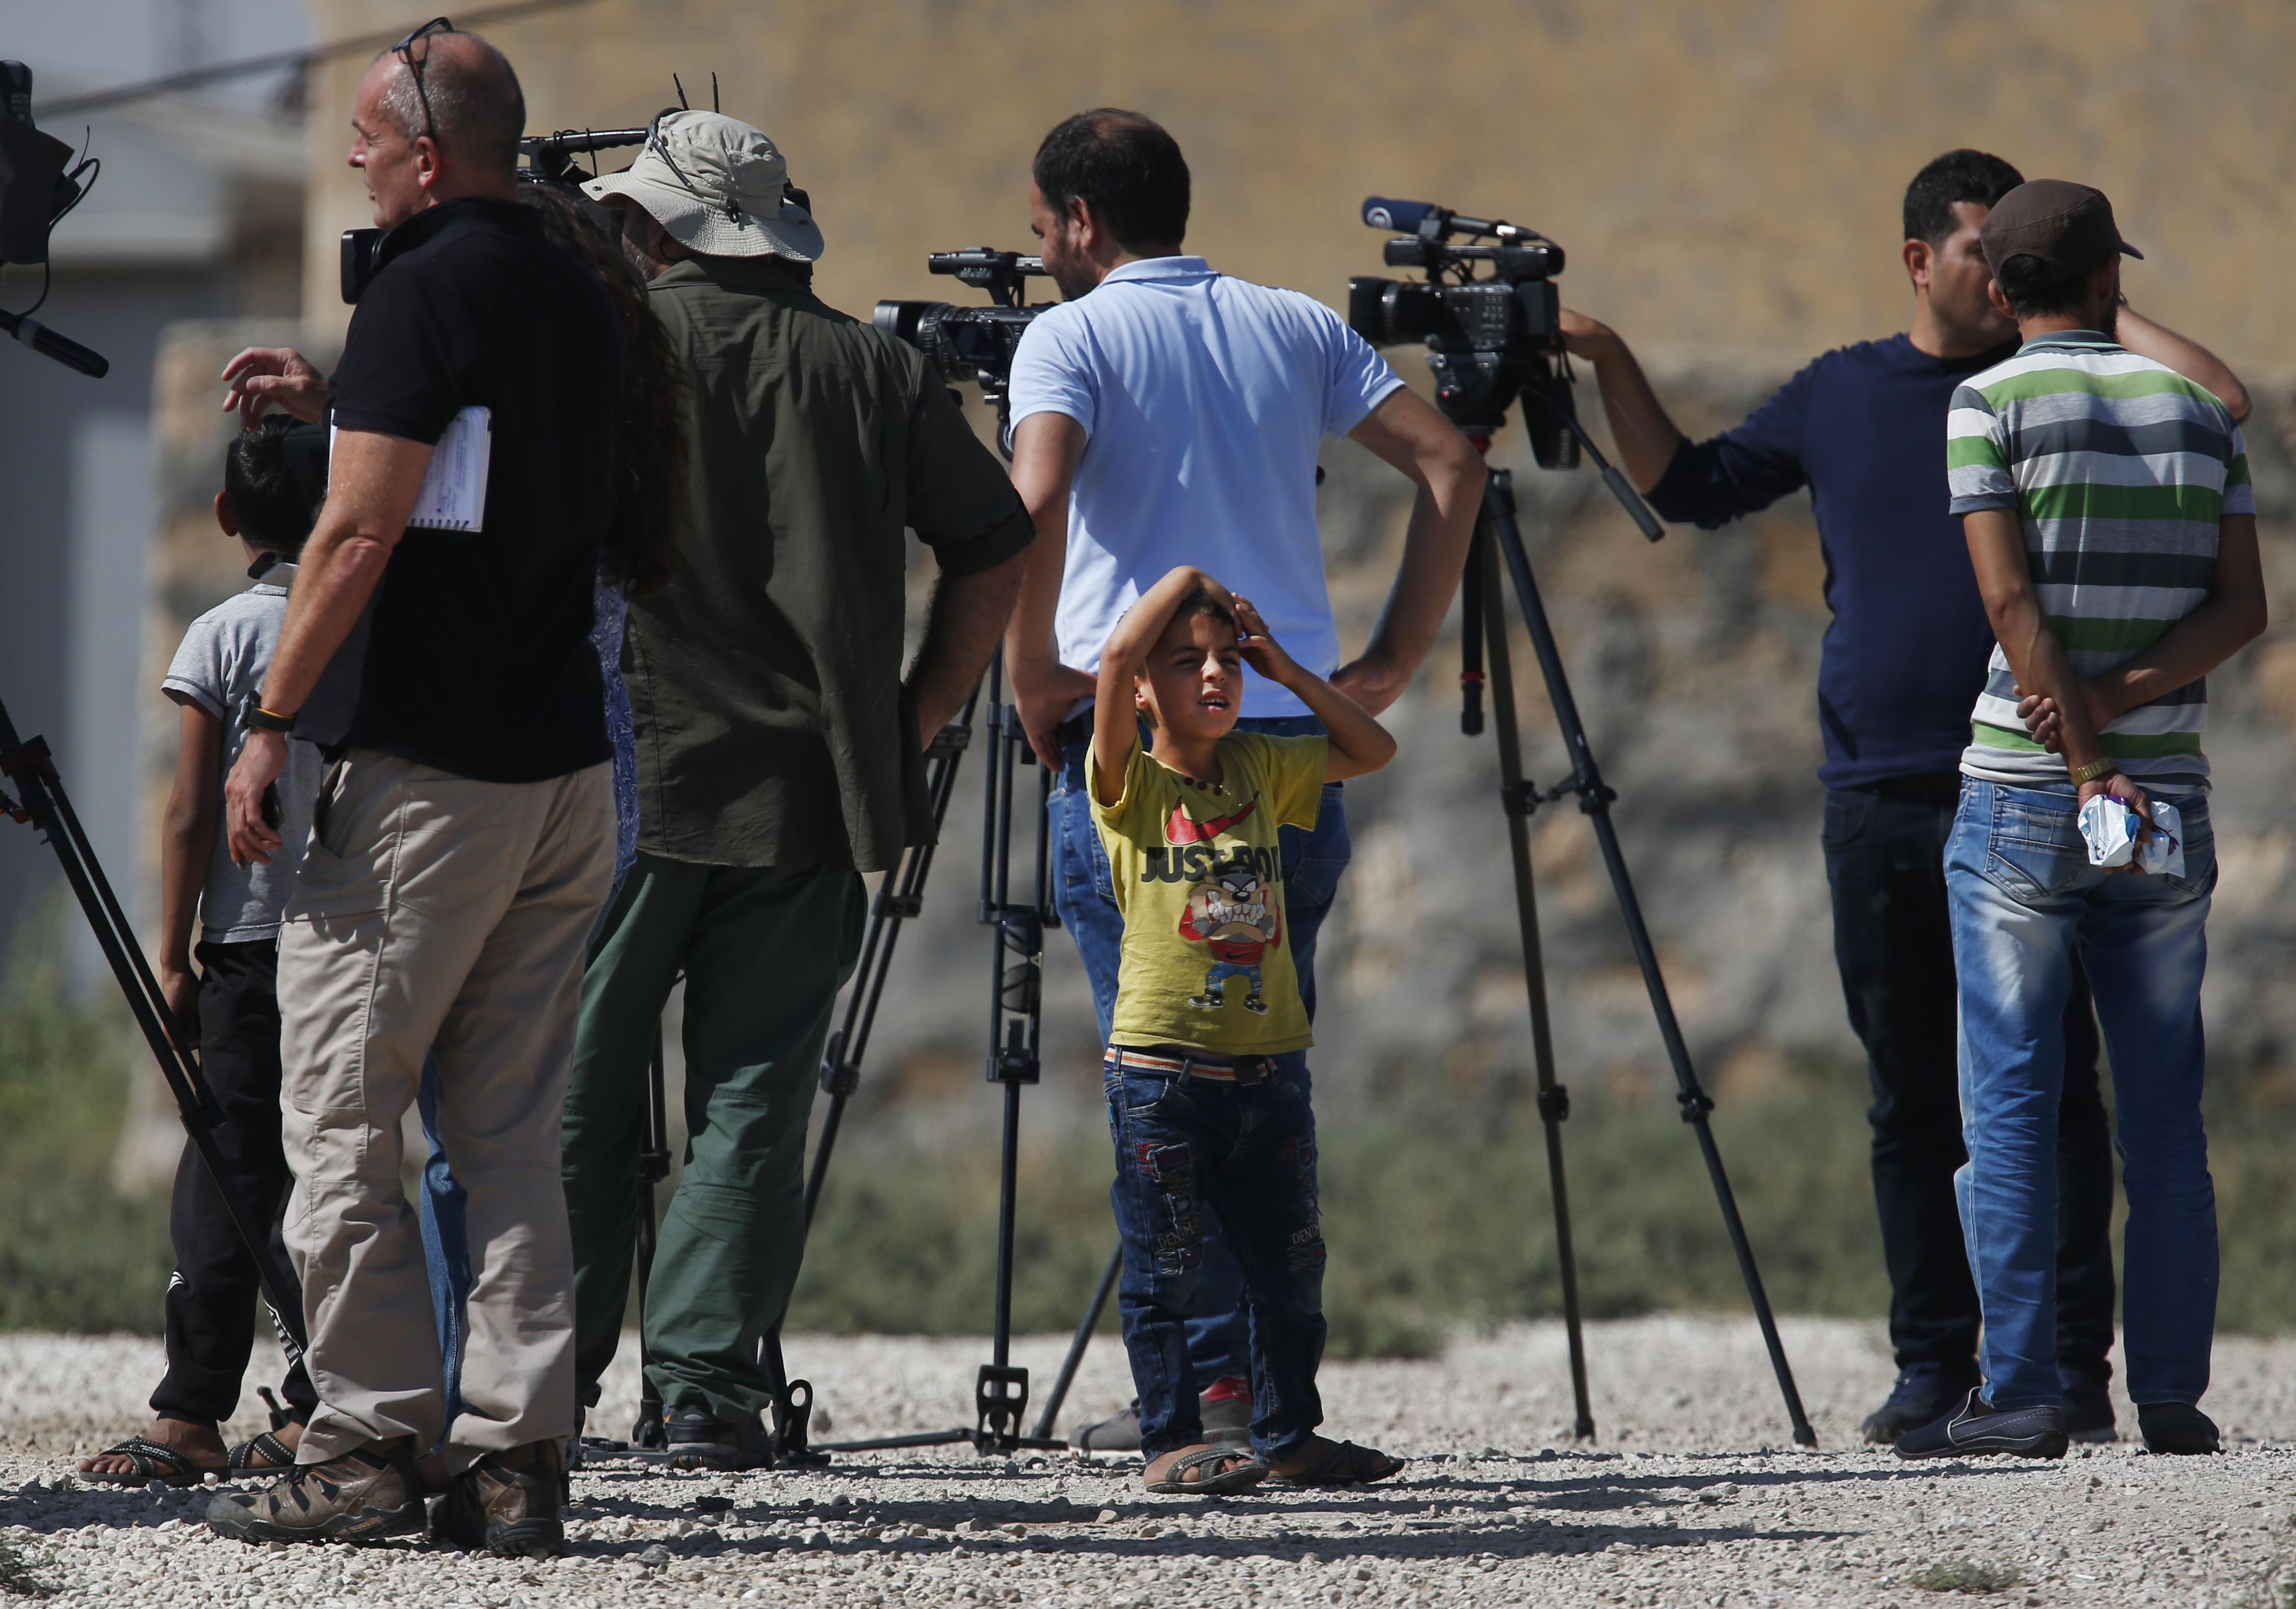 Residents look on as members of the media work at the border between Turkey and Syria, in Akcakale, Sanliurfa province, southeastern Turkey, Tuesday, Oct. 8, 2019. Turkey's vice president Fuat Oktay says his country won't bow to threats in an apparent response to U.S. President Donald Trump's warning to Ankara about the scope of its planned military incursion into Syria. (AP Photo/Lefteris Pitarakis)